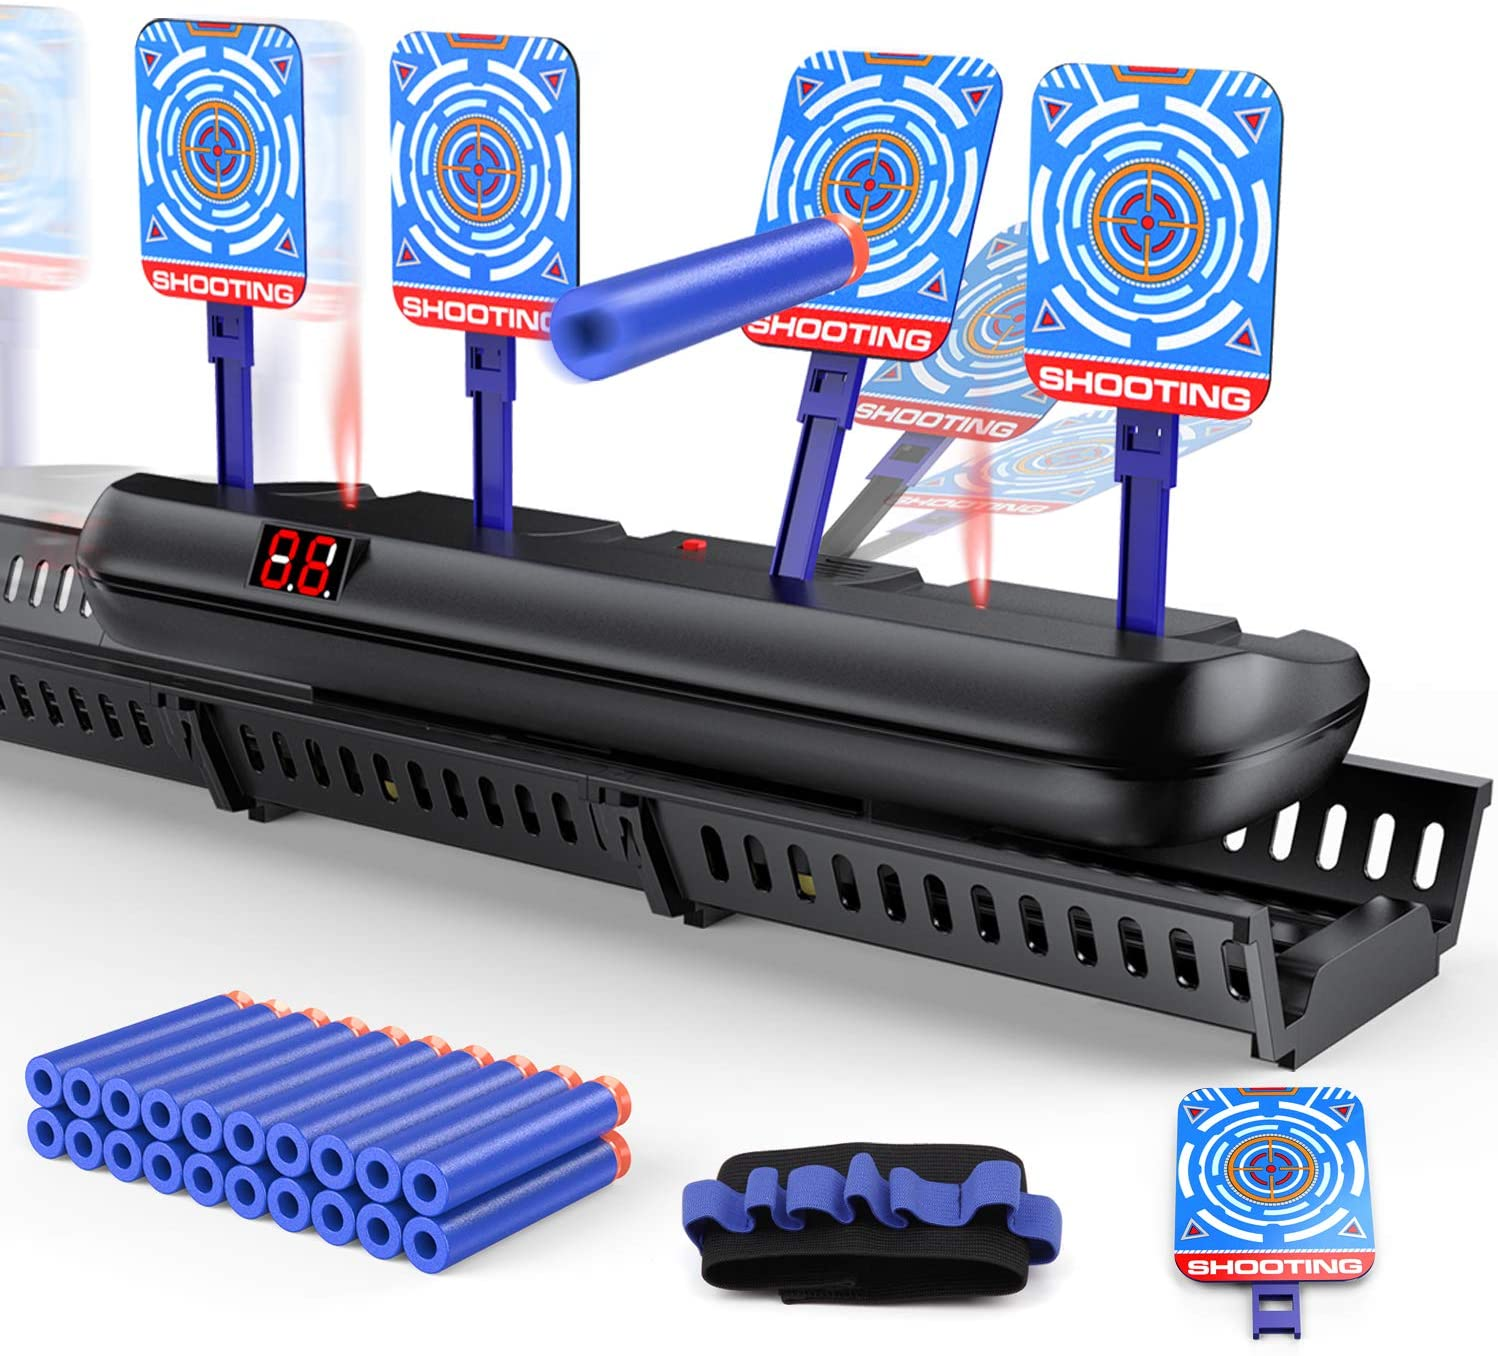 Hmount Upgraded Running Electric Scoring Auto Reset Shooting Digital Target for Nerf Guns Blaster Elite/Mega/Rival Series with 20 Pcs Refill Darts and 1 Hand Wrist Band and 1 Alternate Scoring Target